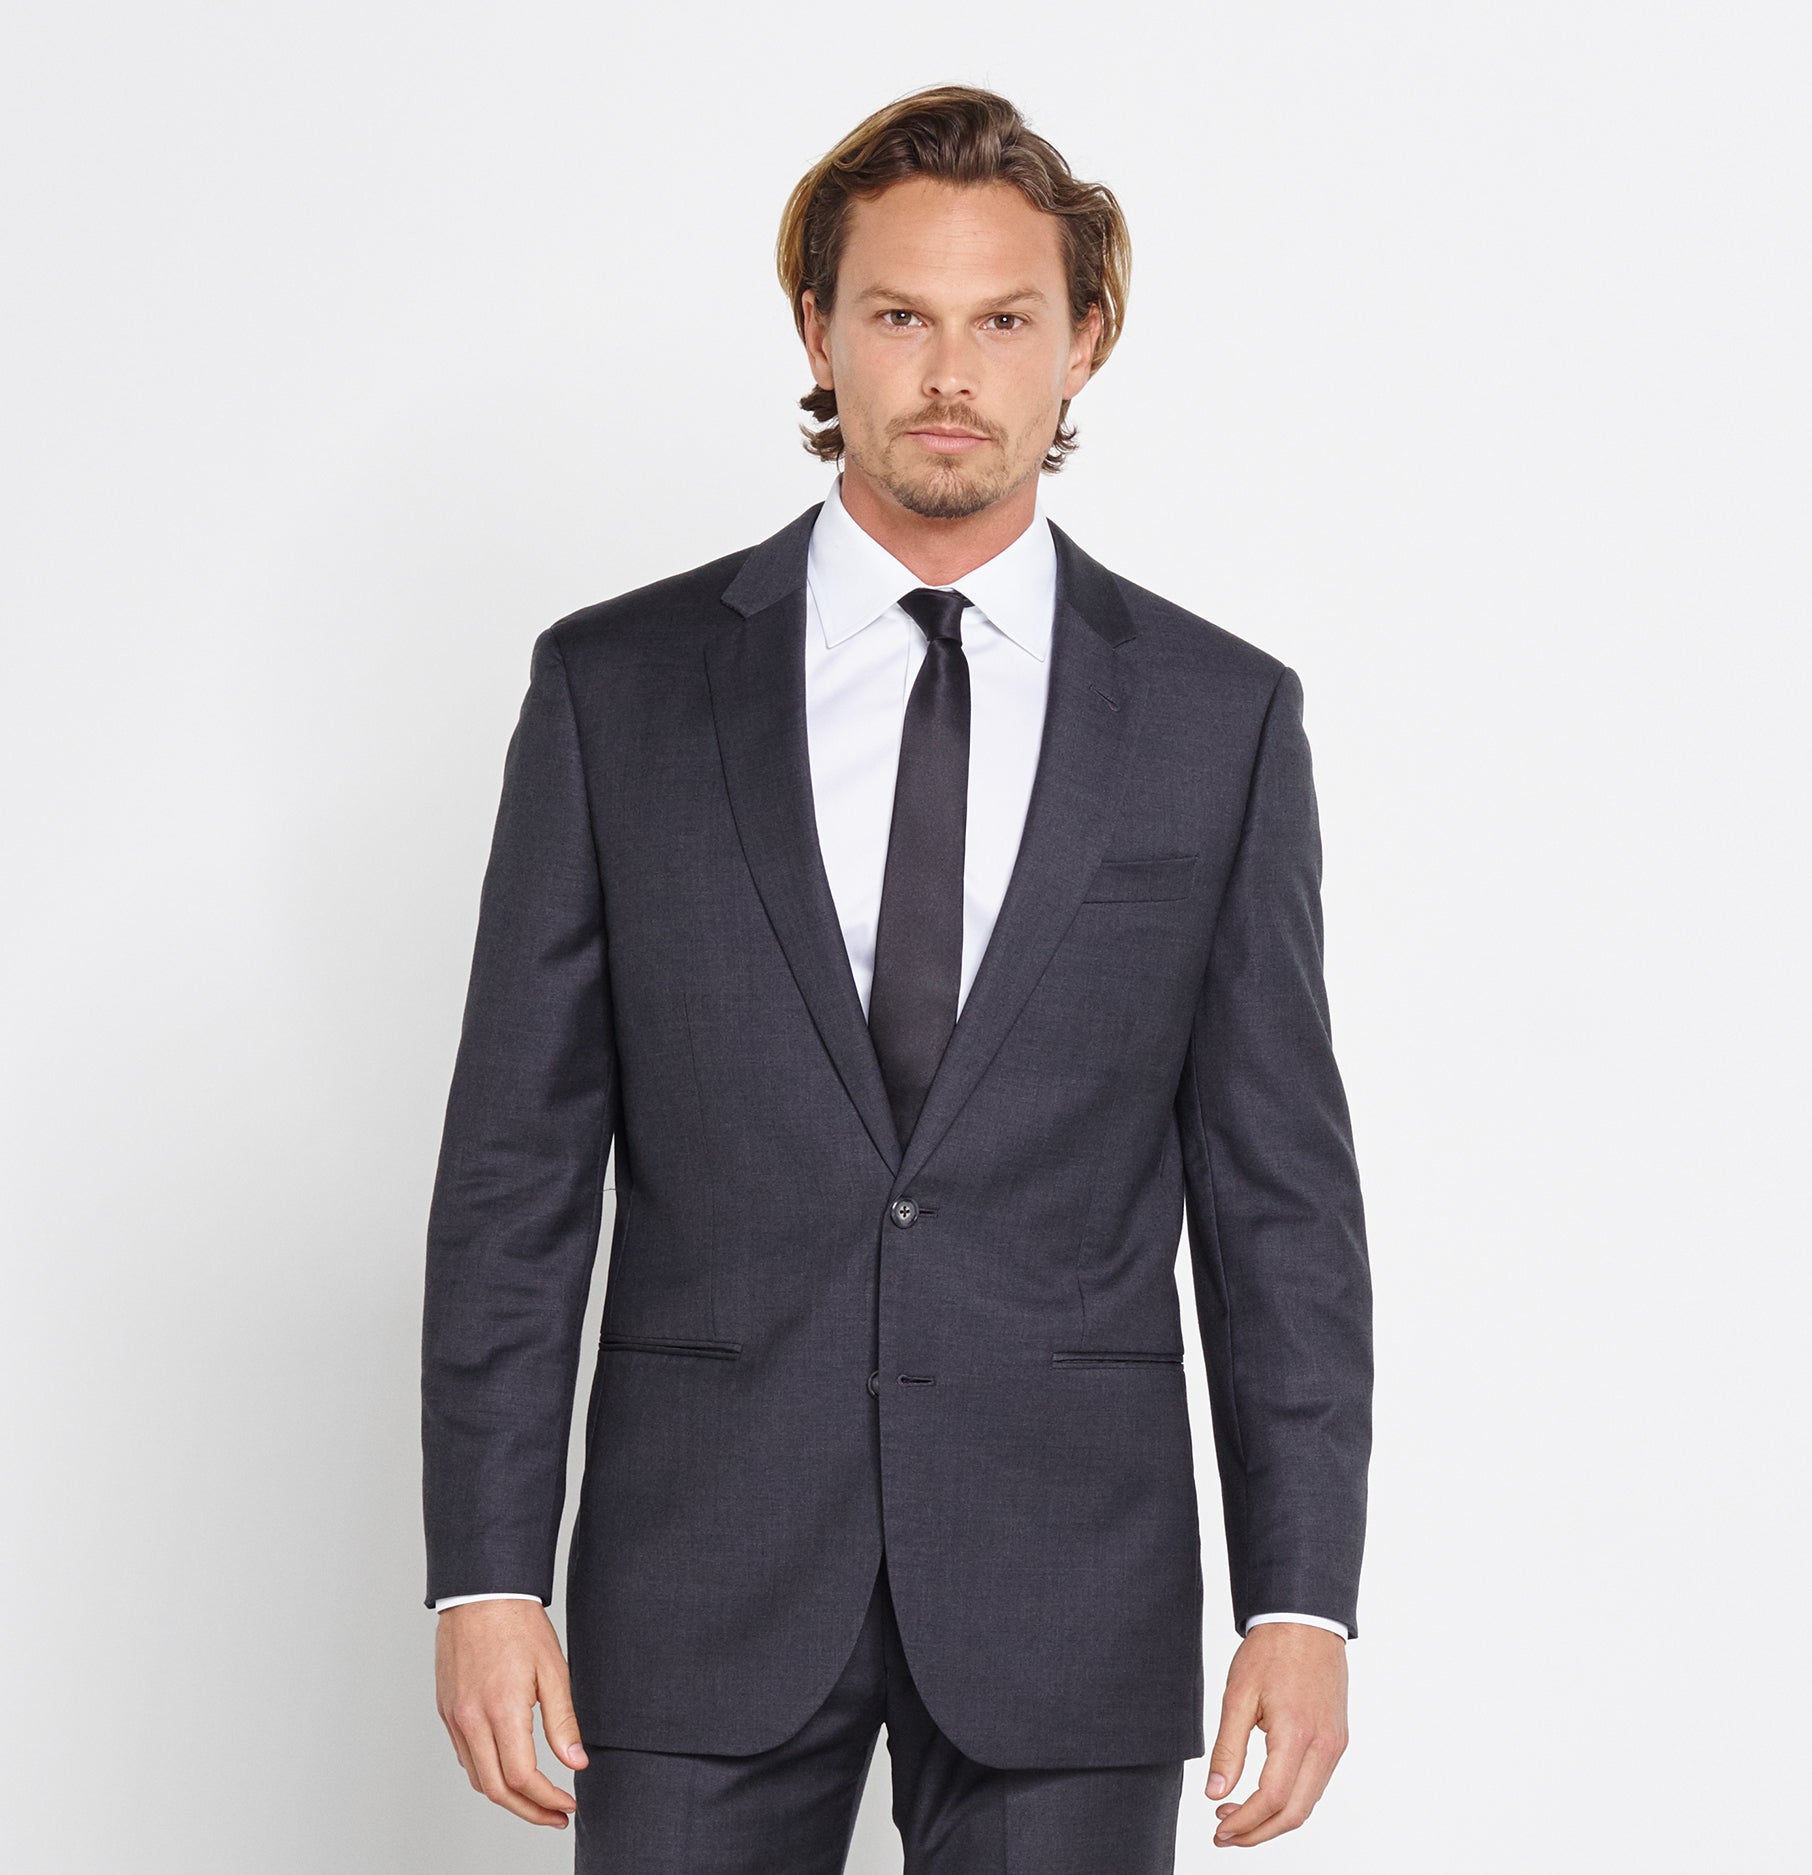 Charcoal Suit | The Black Tux